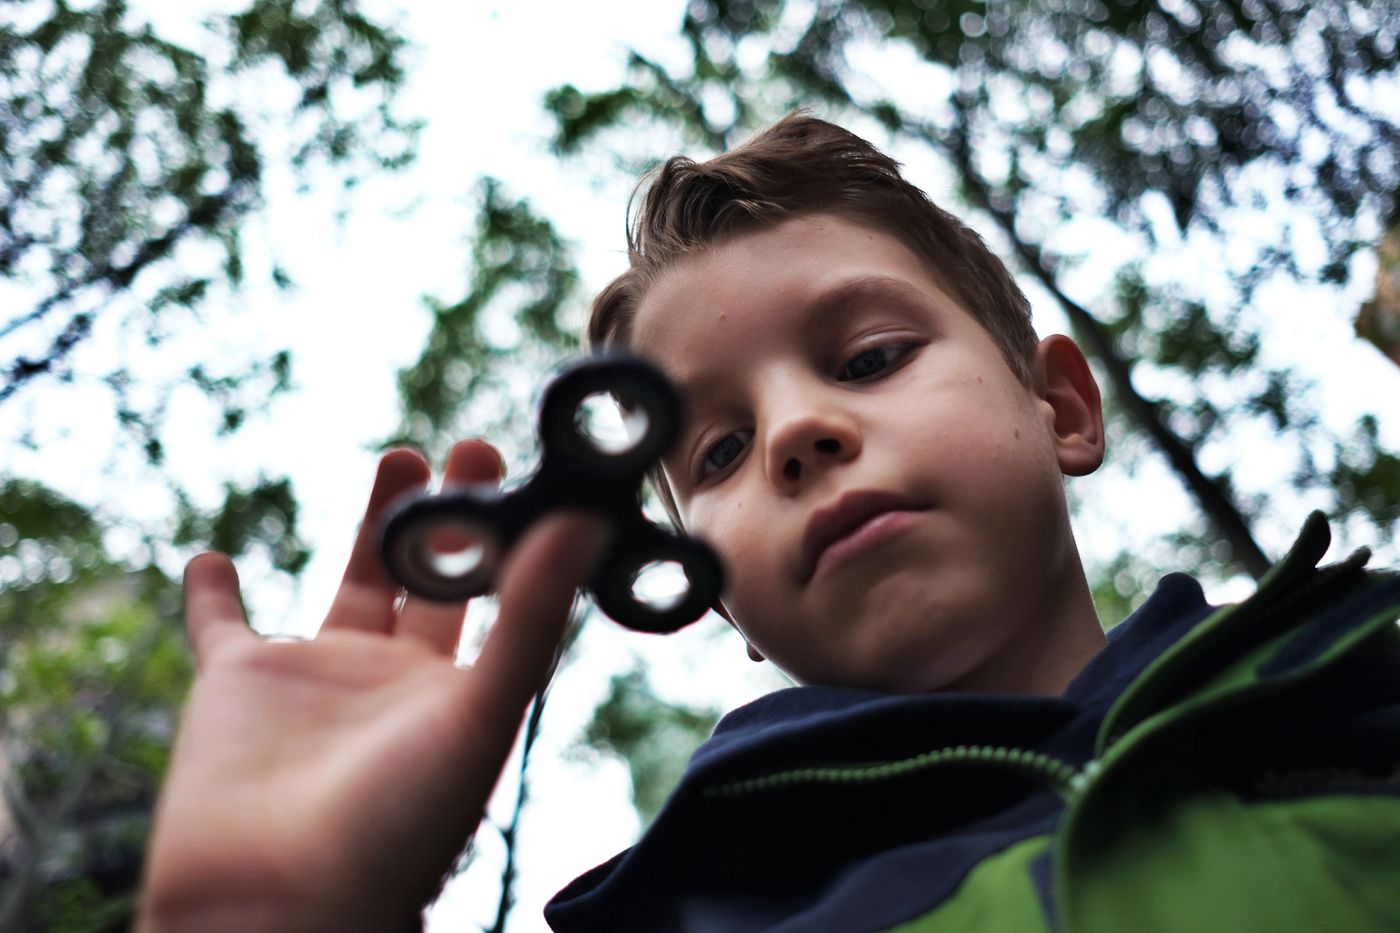 Fidget spinners, weighted blankets, and the rise of anxiety